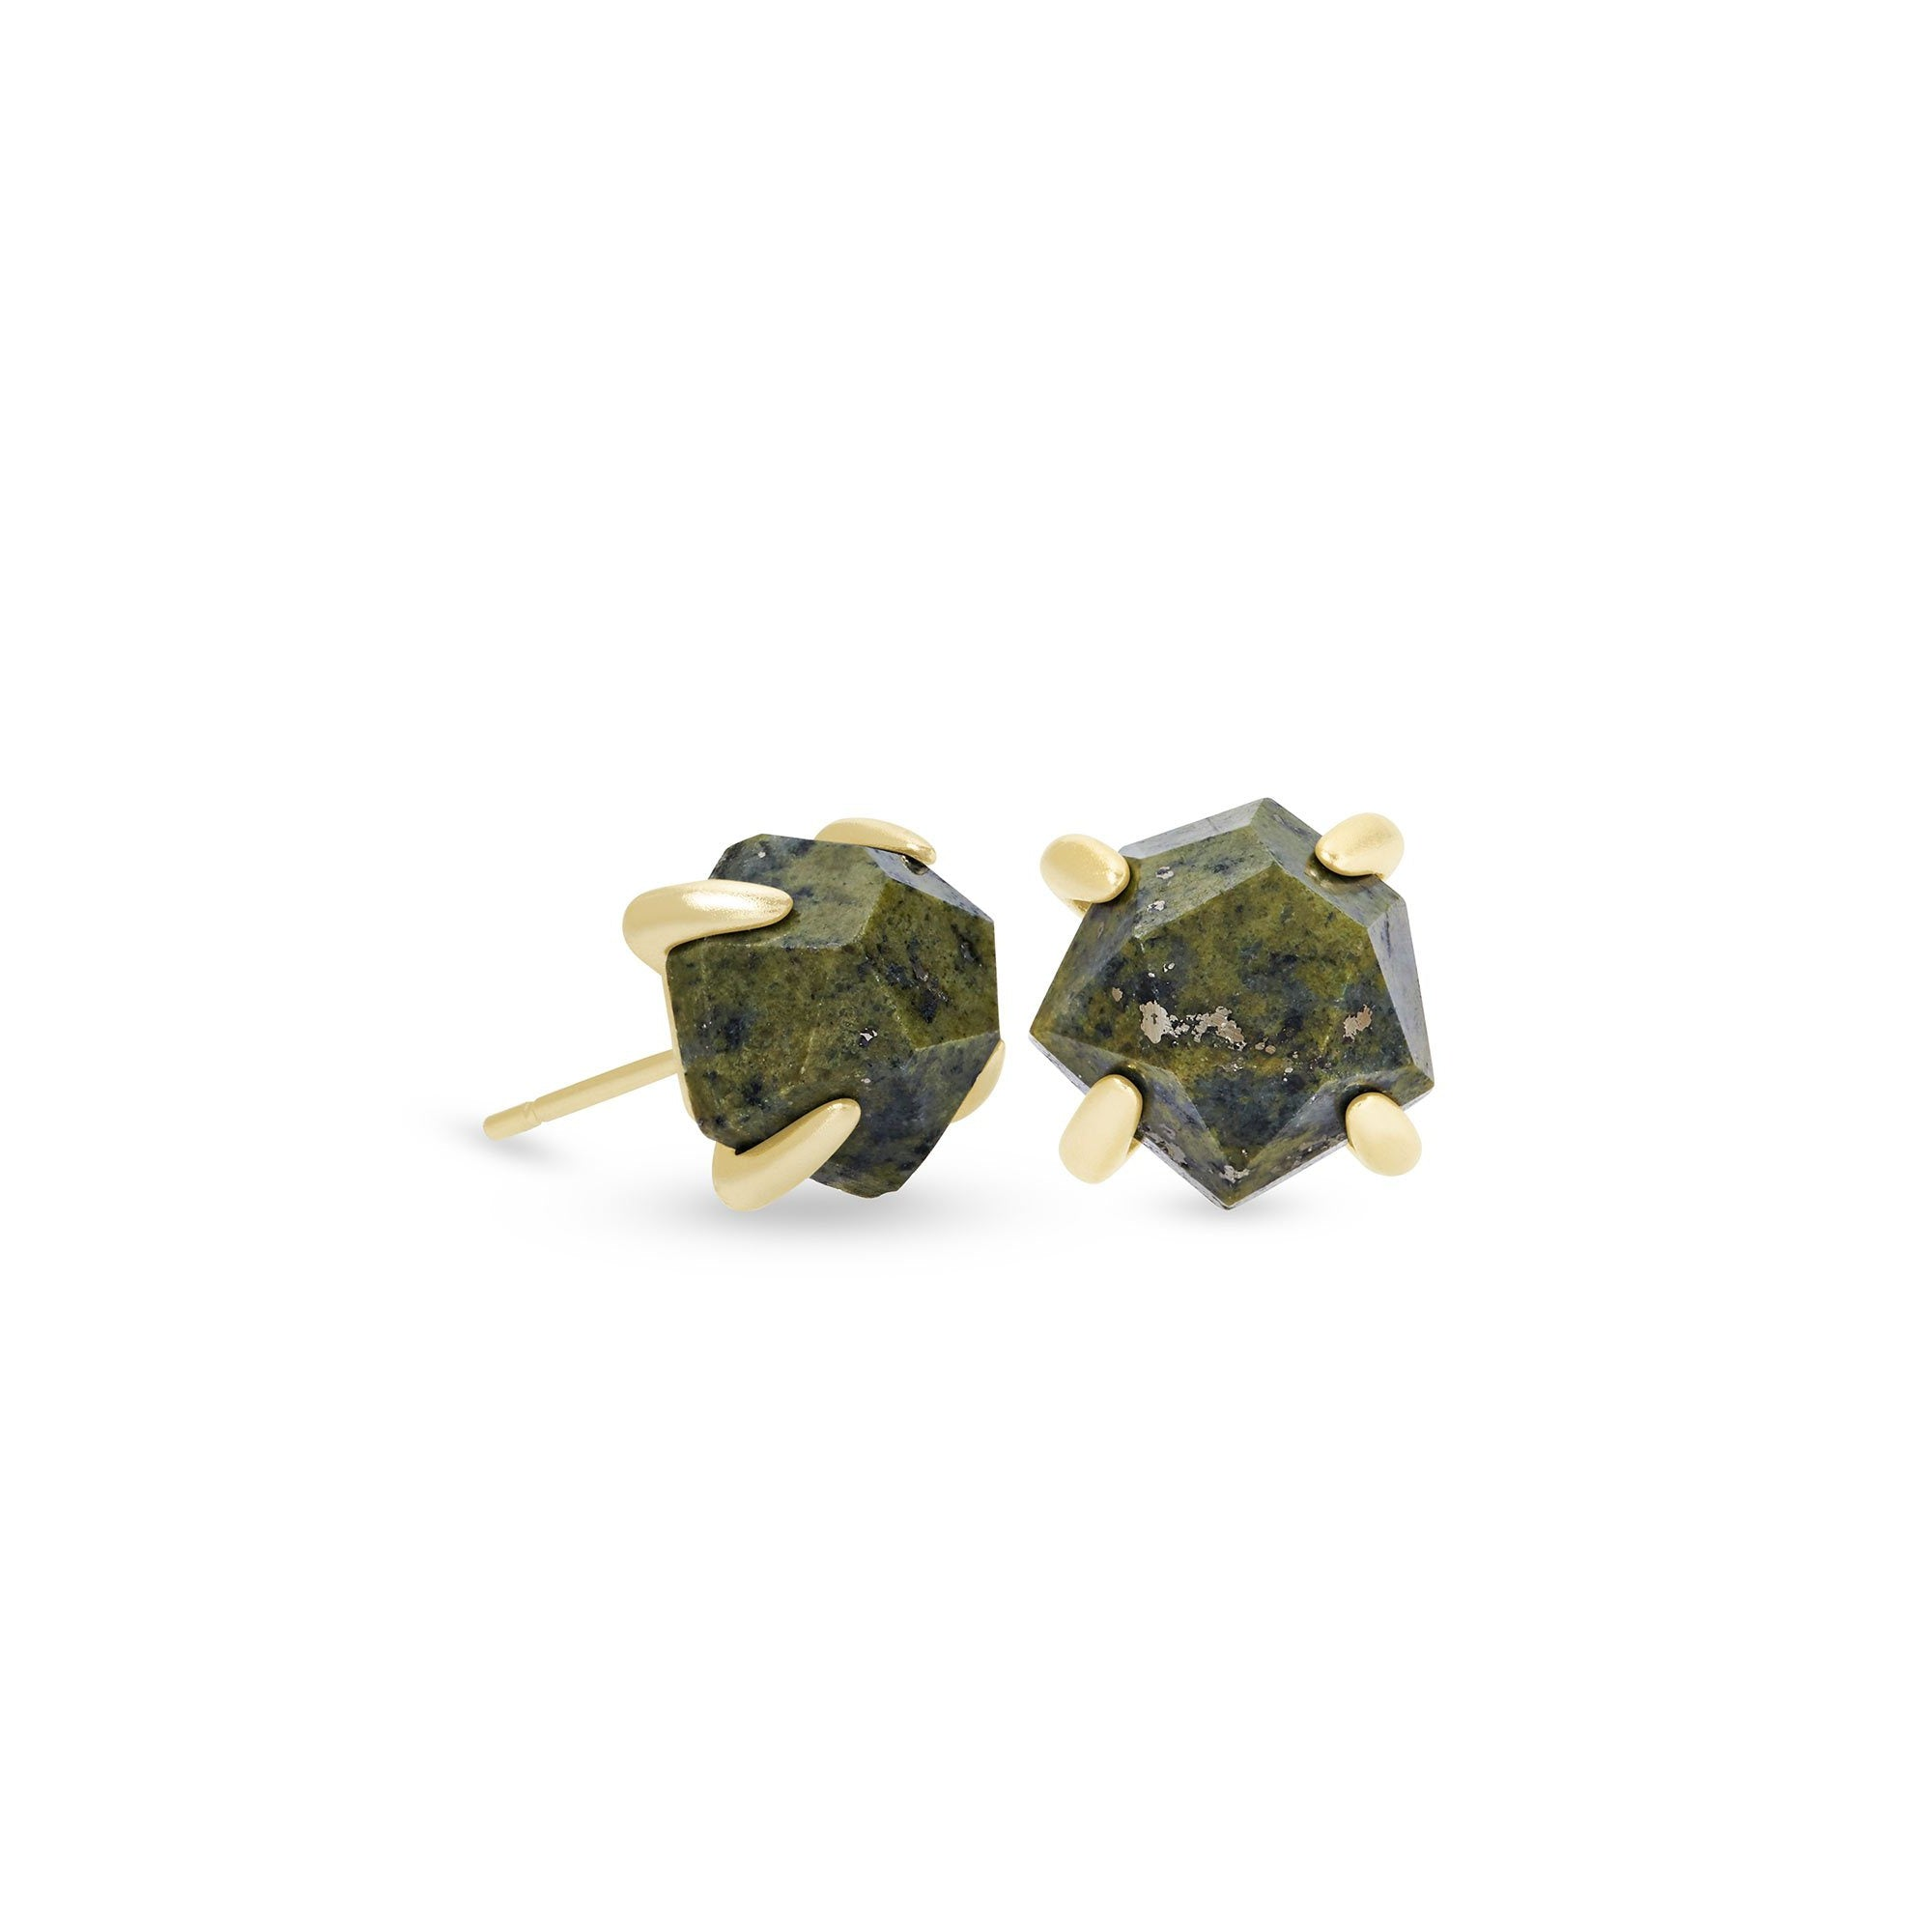 KS Ellms Earrings in Olive Epidote